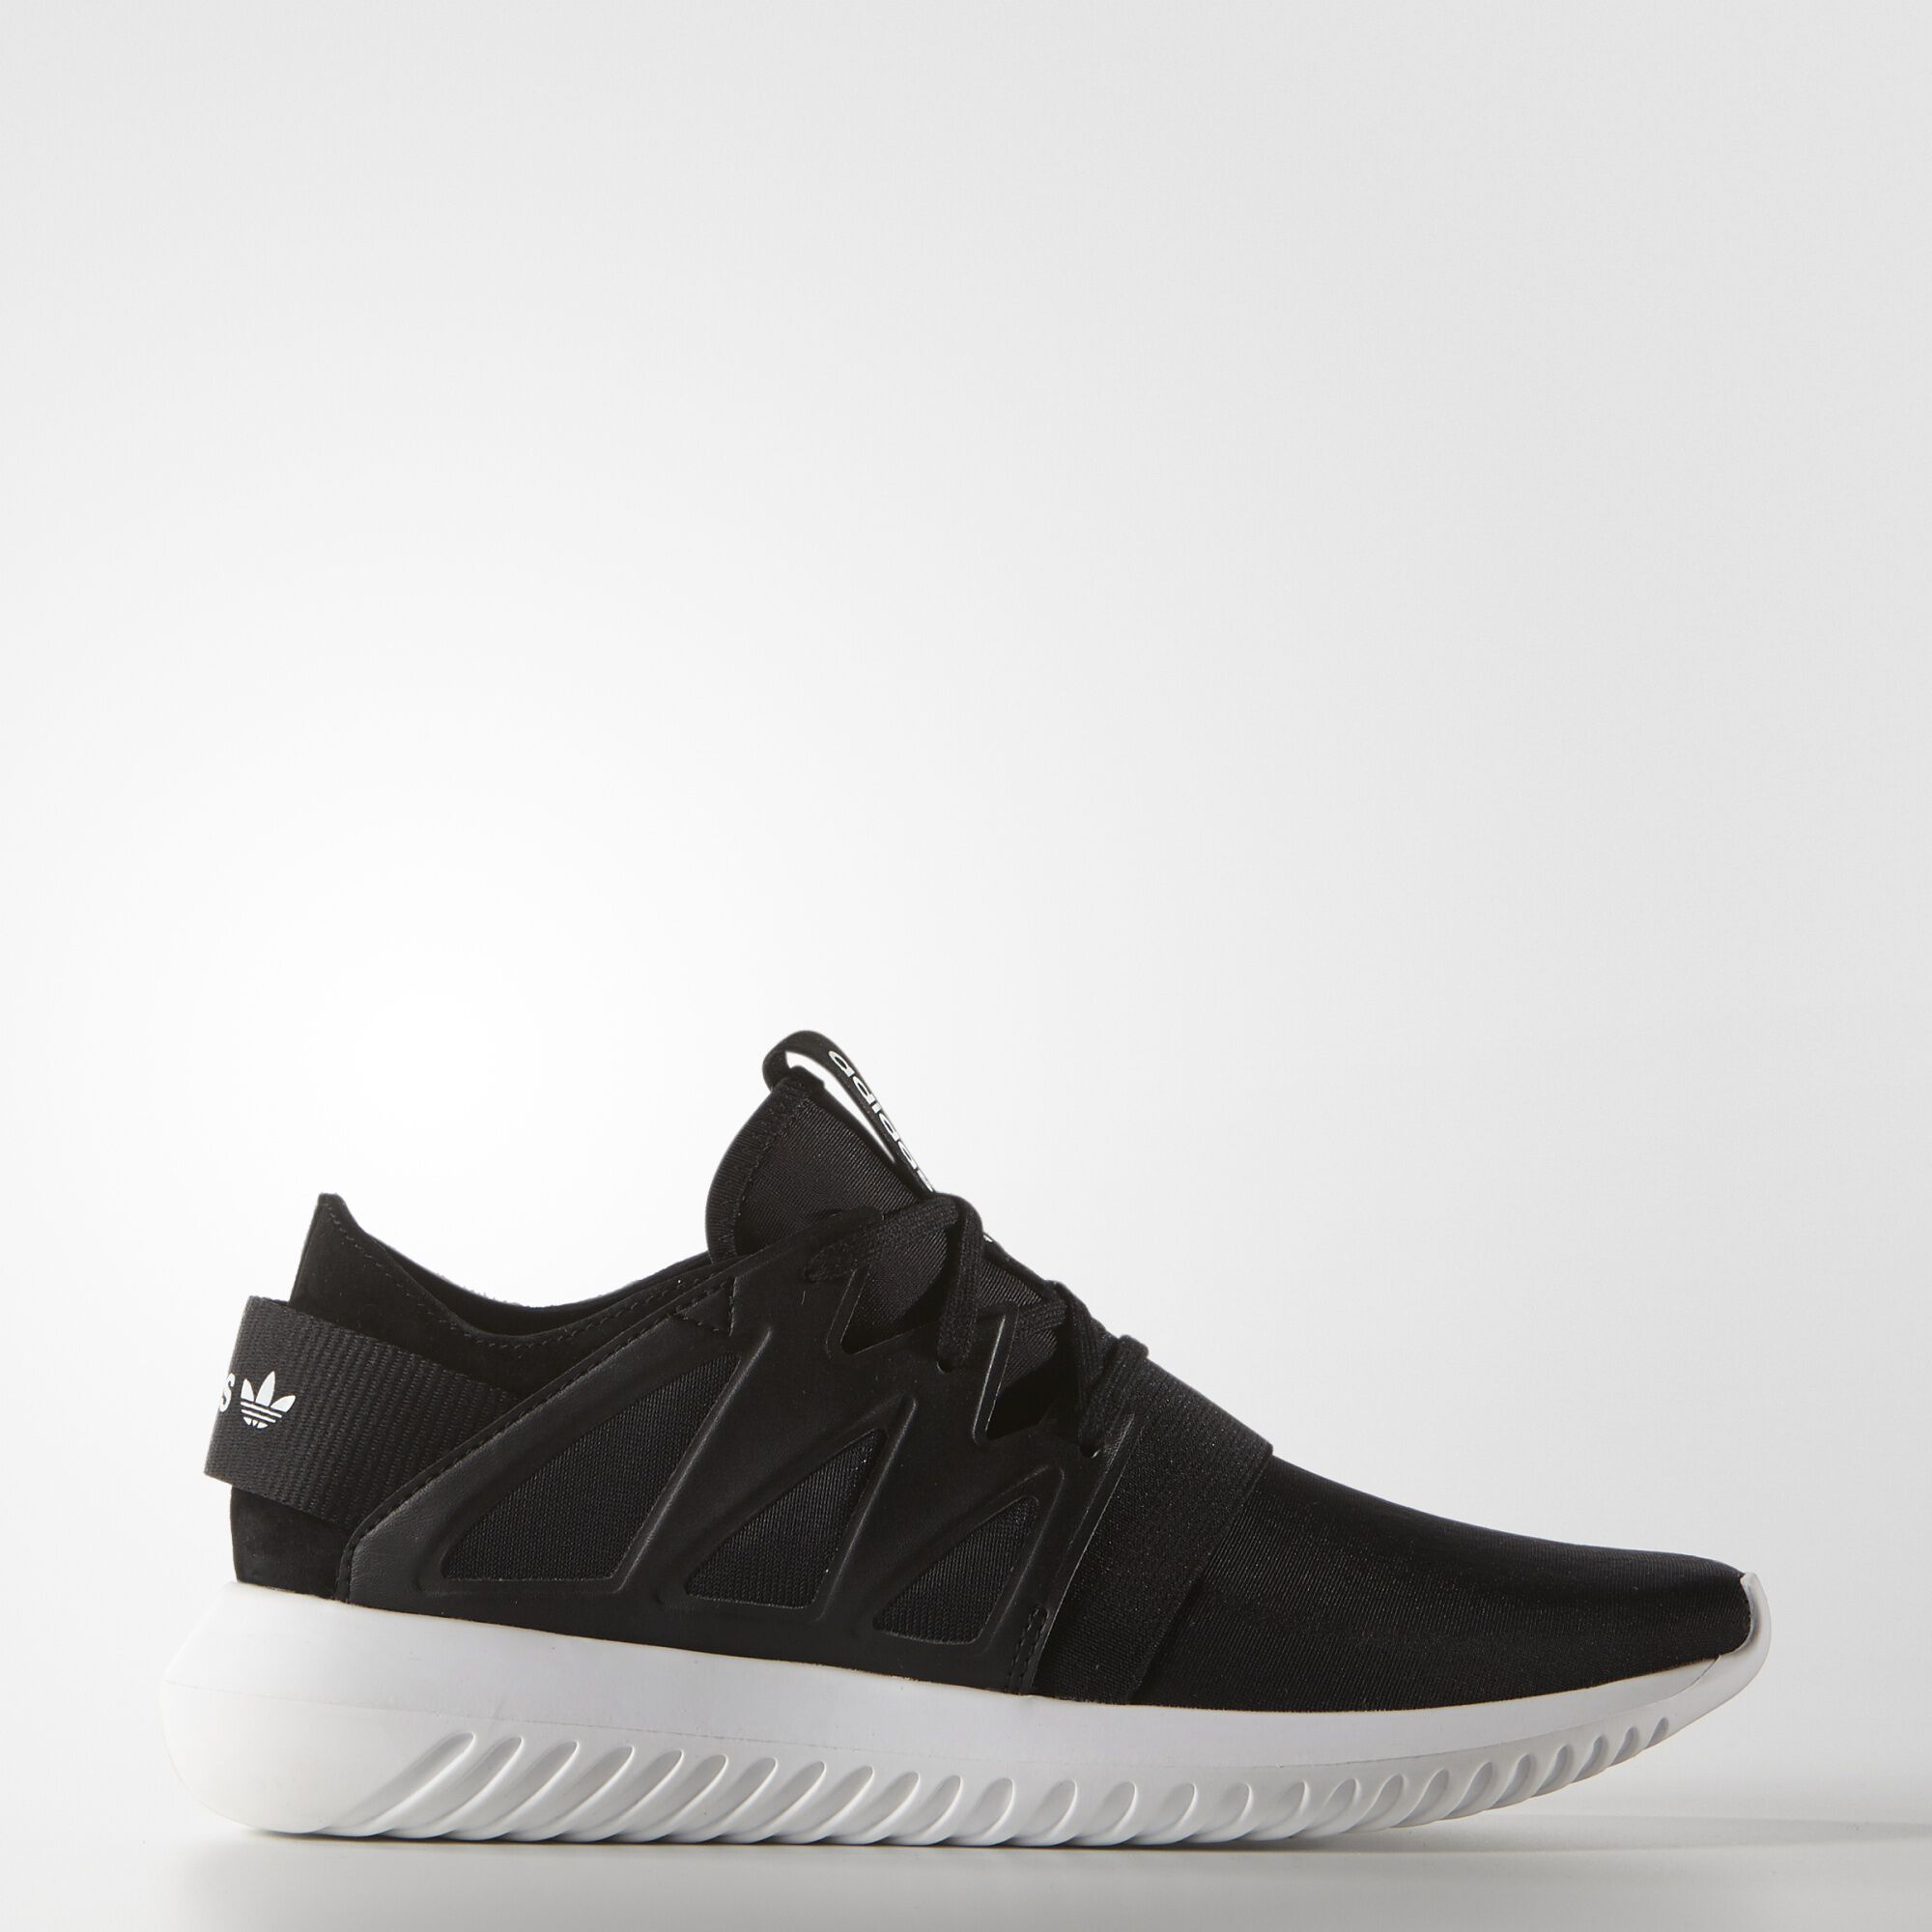 Adidas Tubular Viral Review